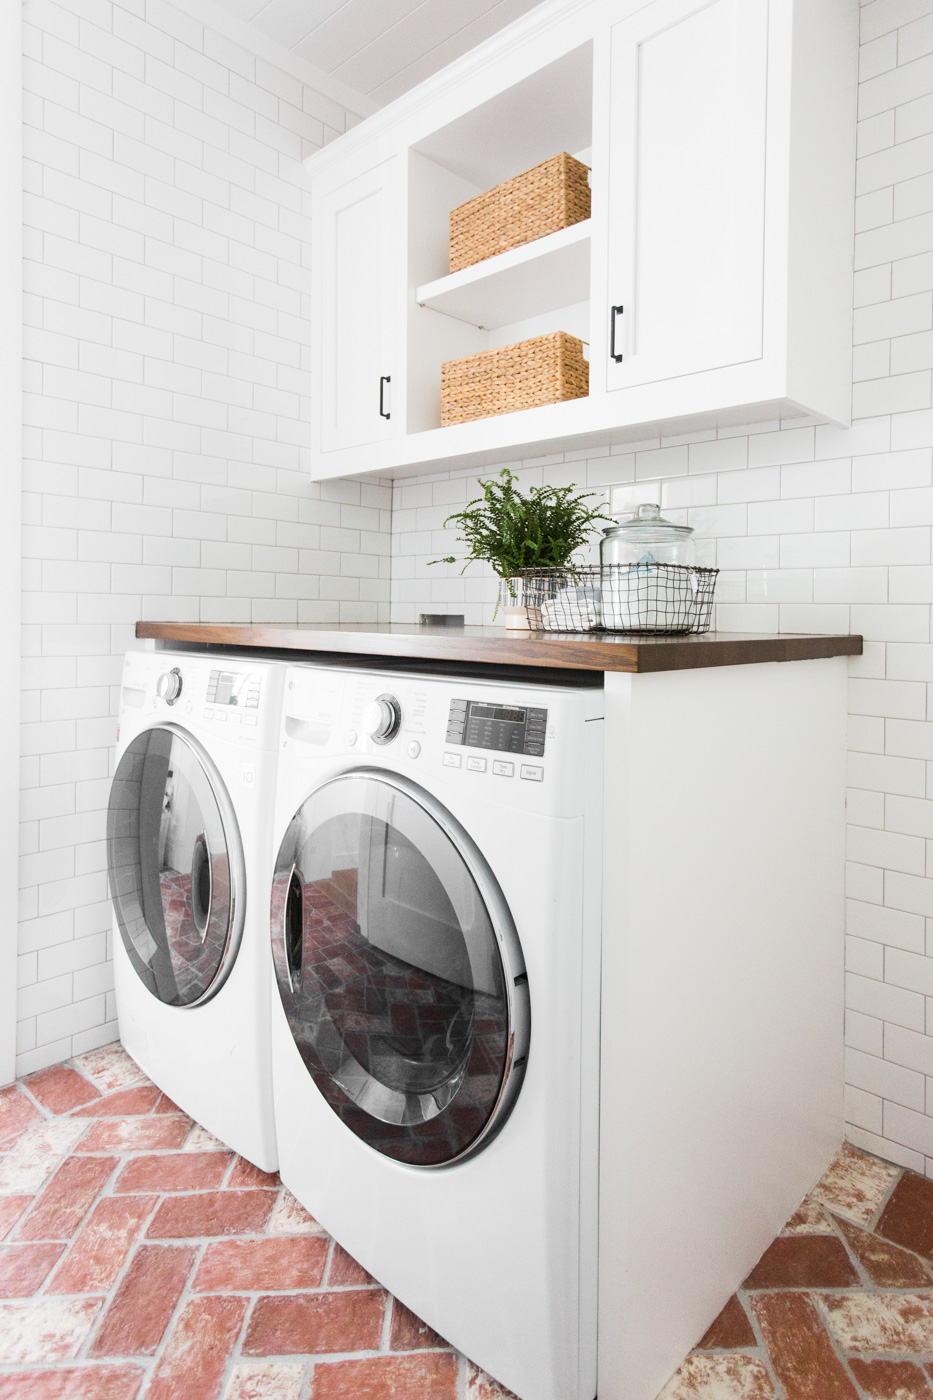 10+ Amazing Laundry Rooms - Classy Clutter on Amazing Laundry Rooms  id=69391